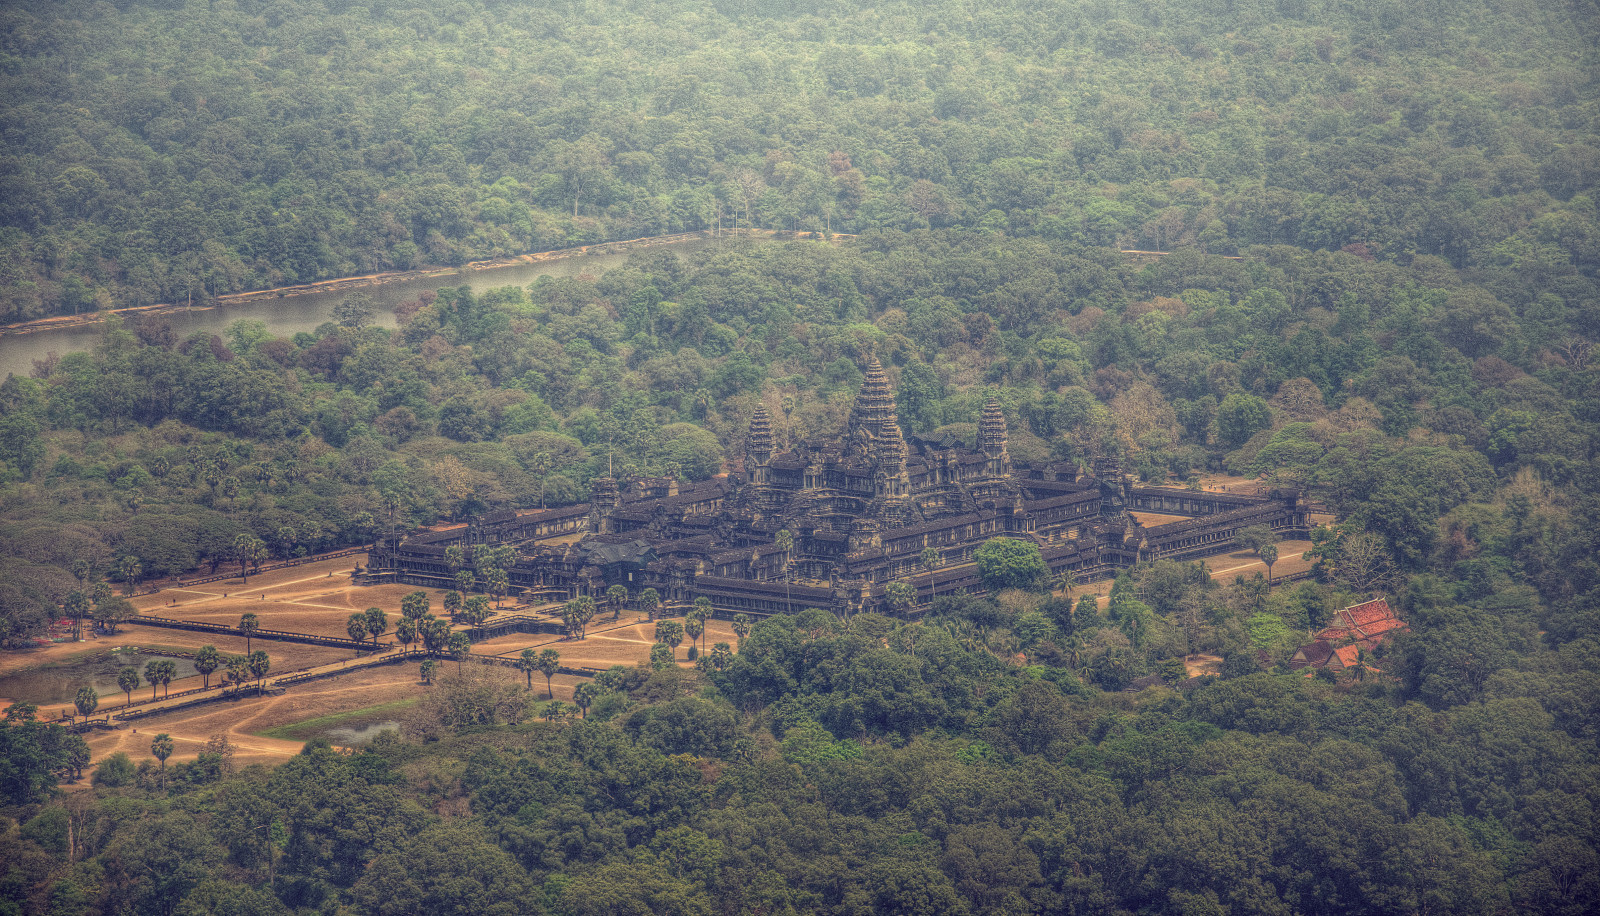 Angkor from a helipcopter